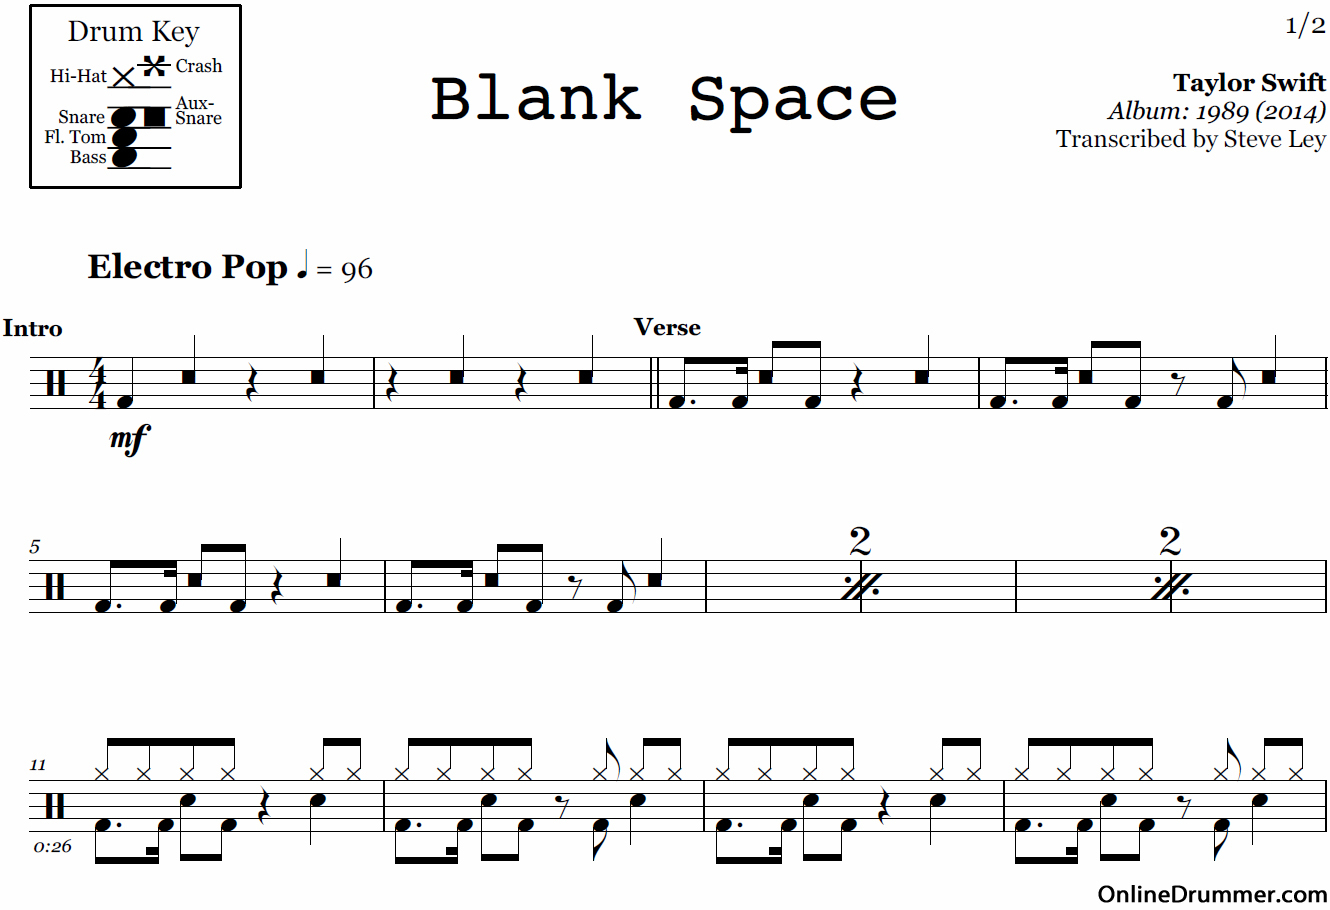 Free Printable Sheet Music For Drums   Download Them Or Print - Free Printable Drum Sheet Music